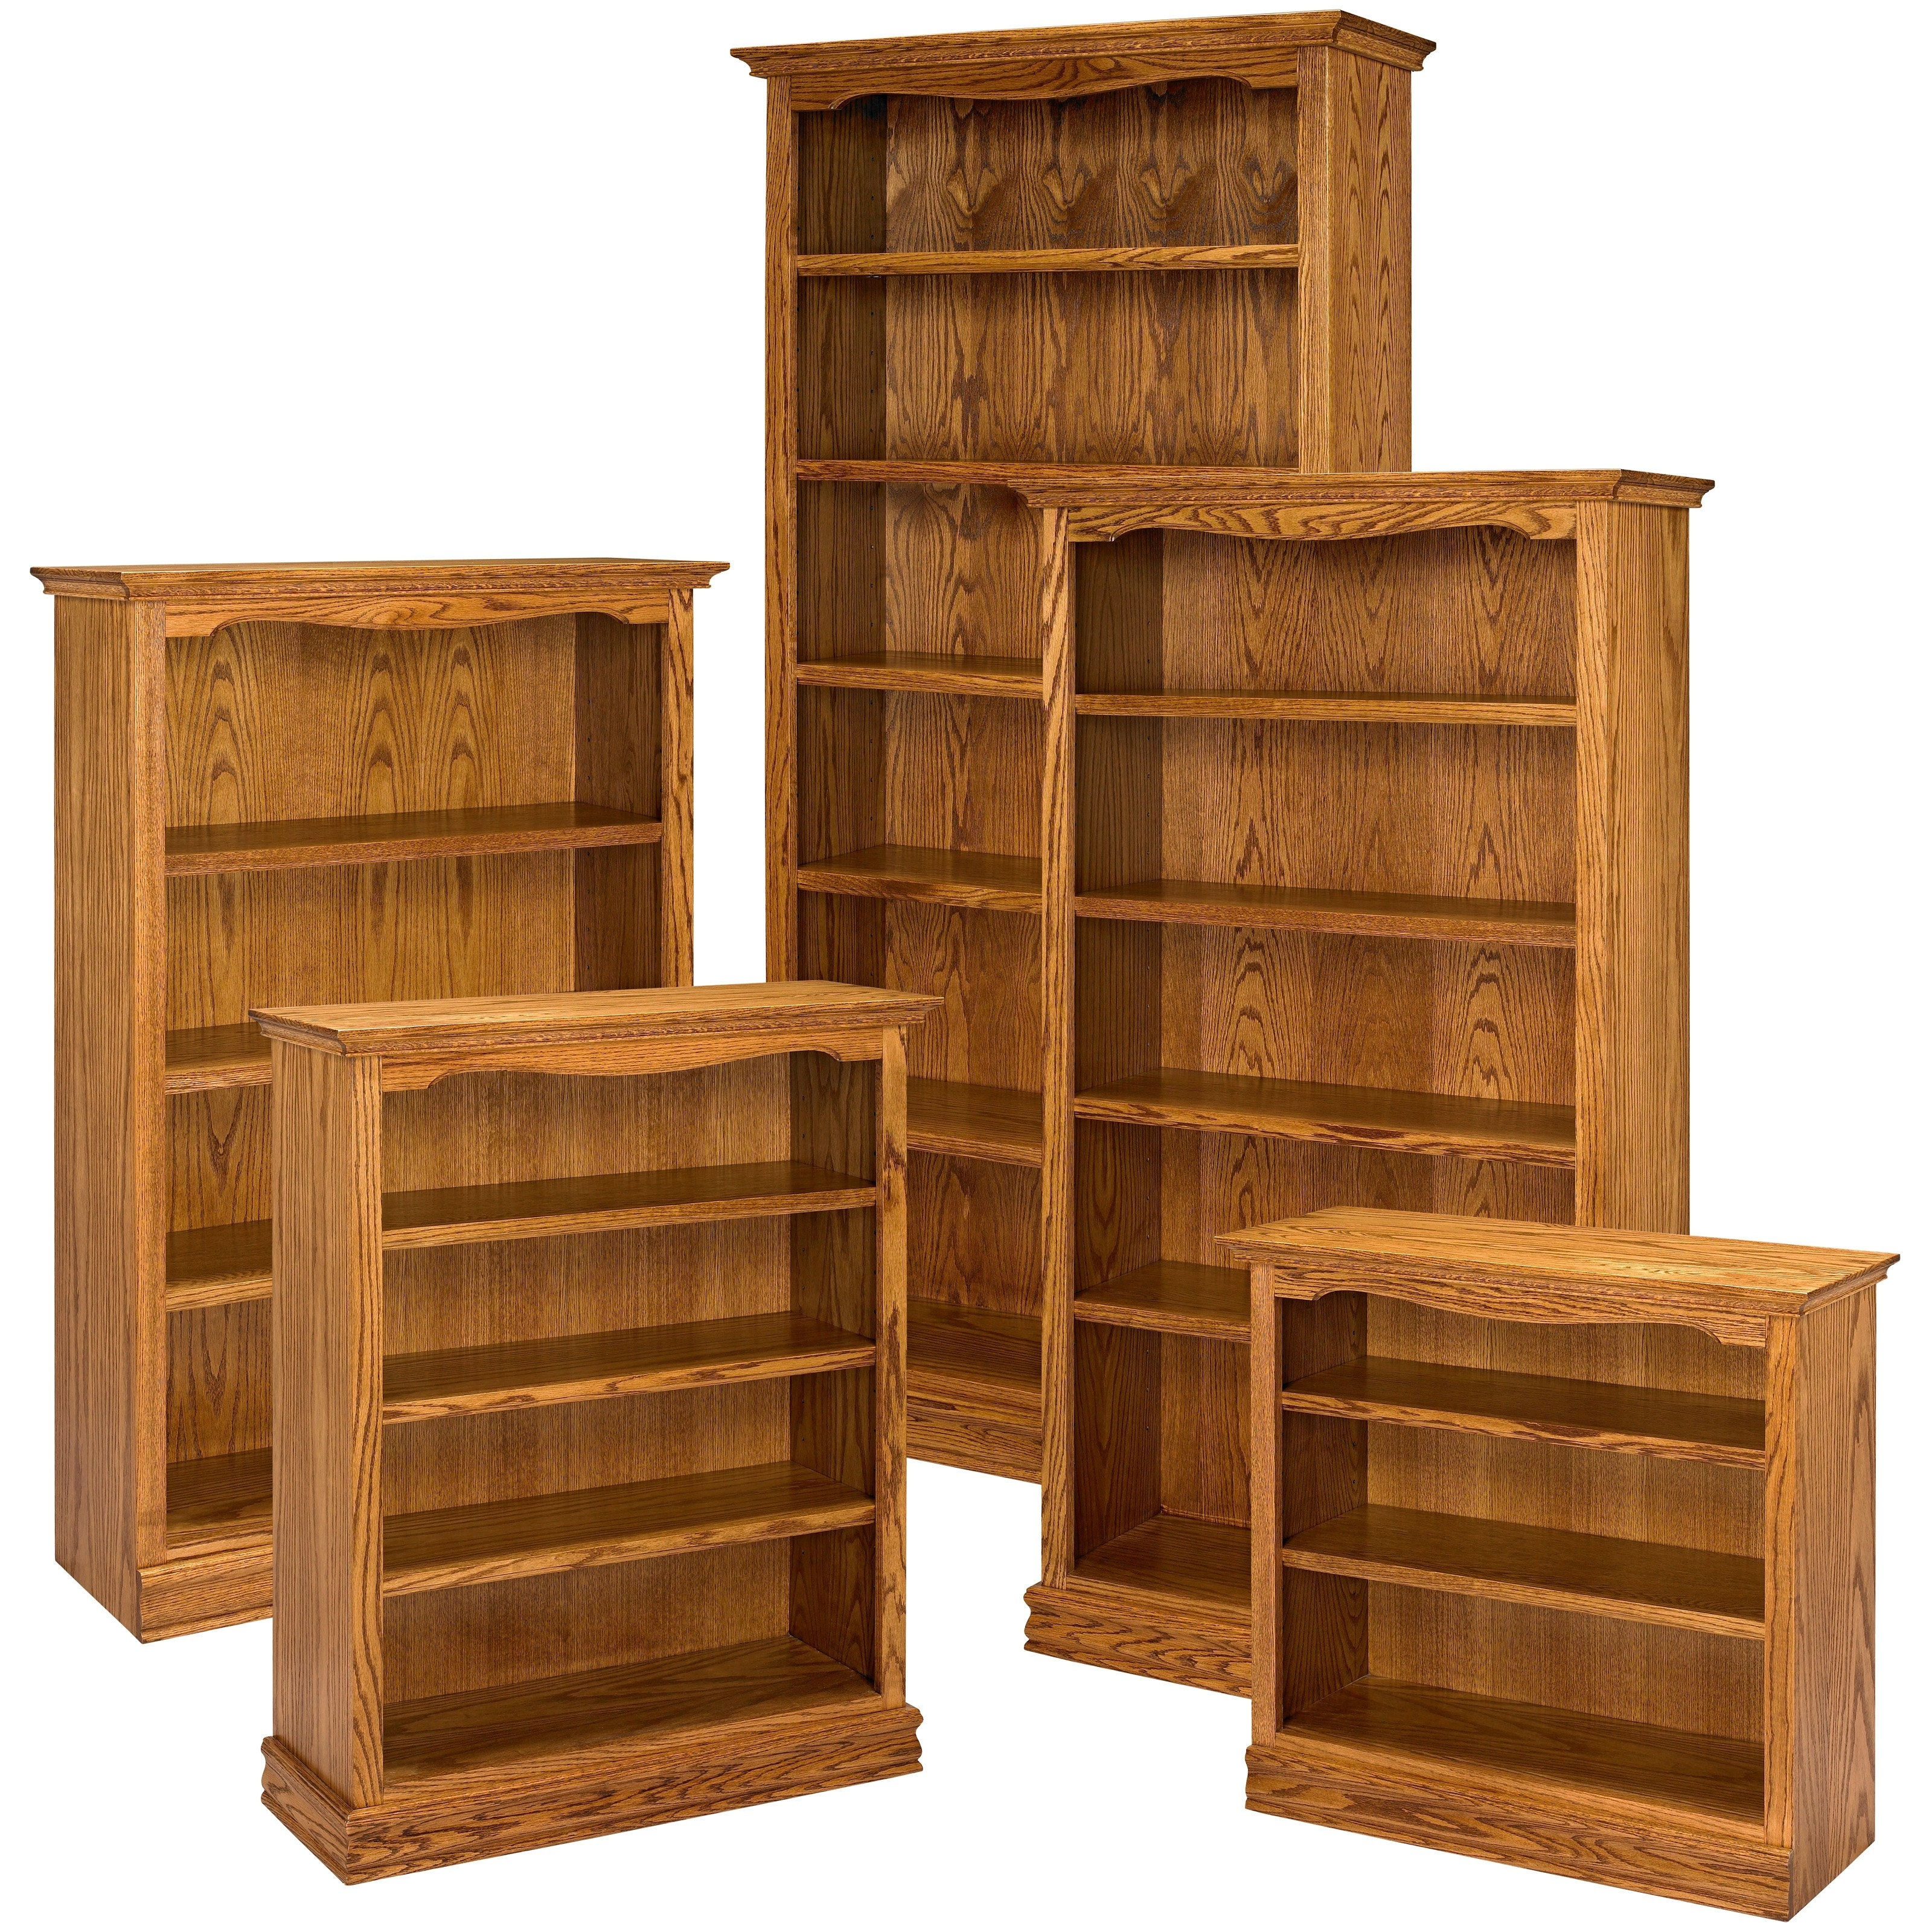 Hayneedle Throughout Latest Solid Oak Bookcases (View 7 of 15)